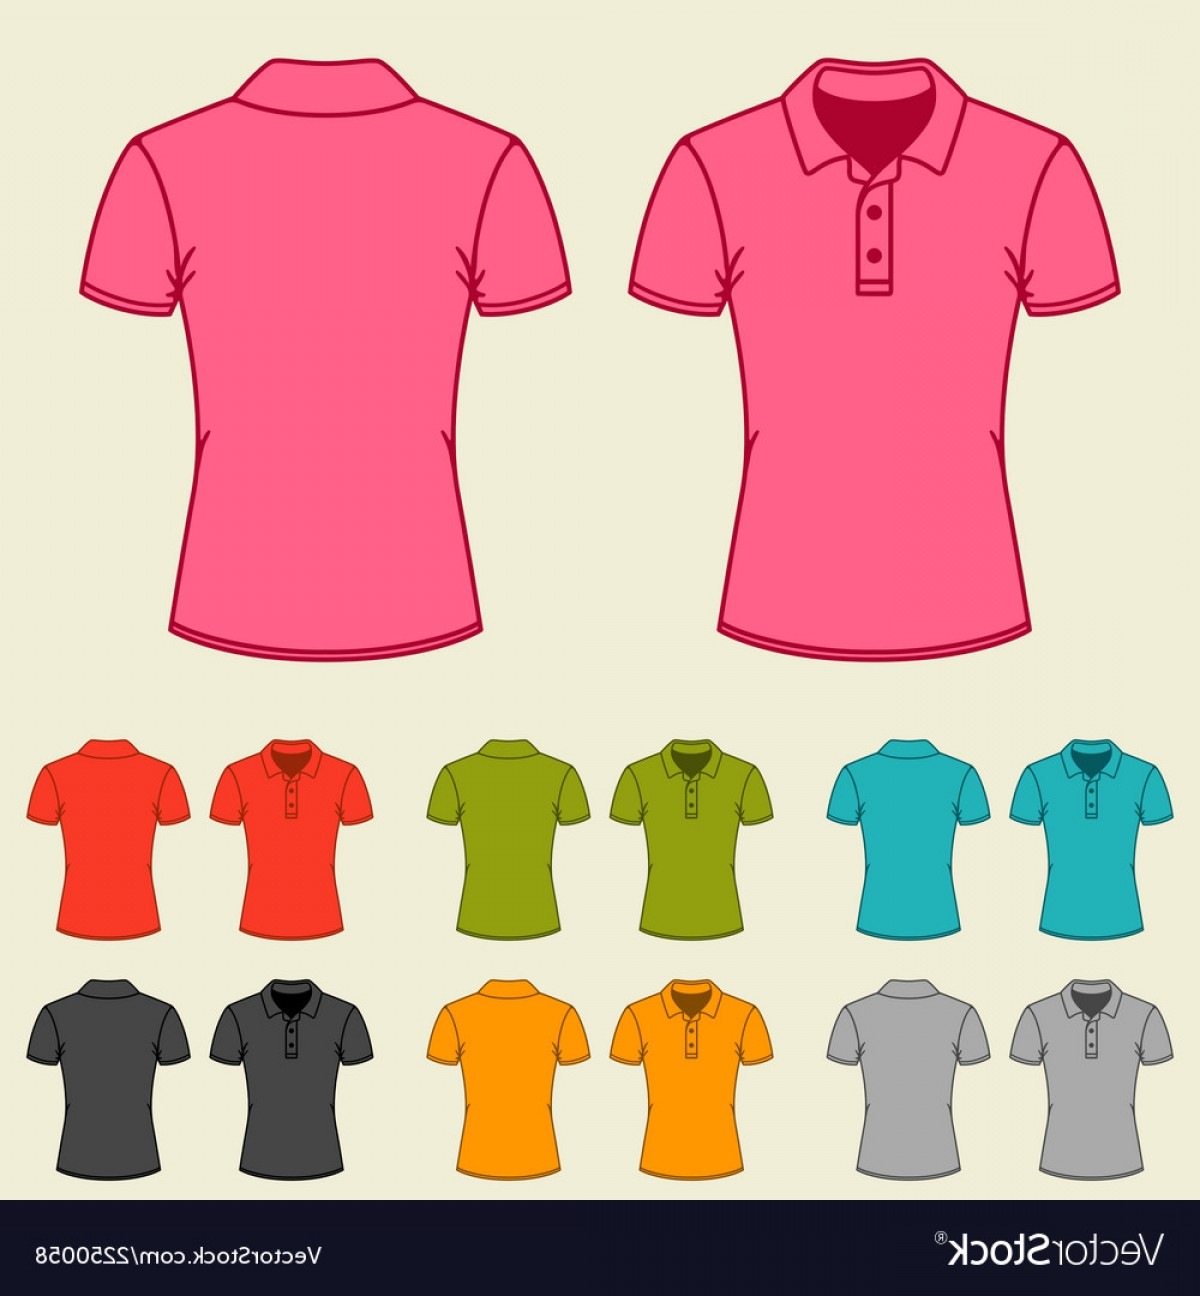 Female Polo Shirt Vector Template: Set Of Templates Colored Polo Shirts For Women Vector